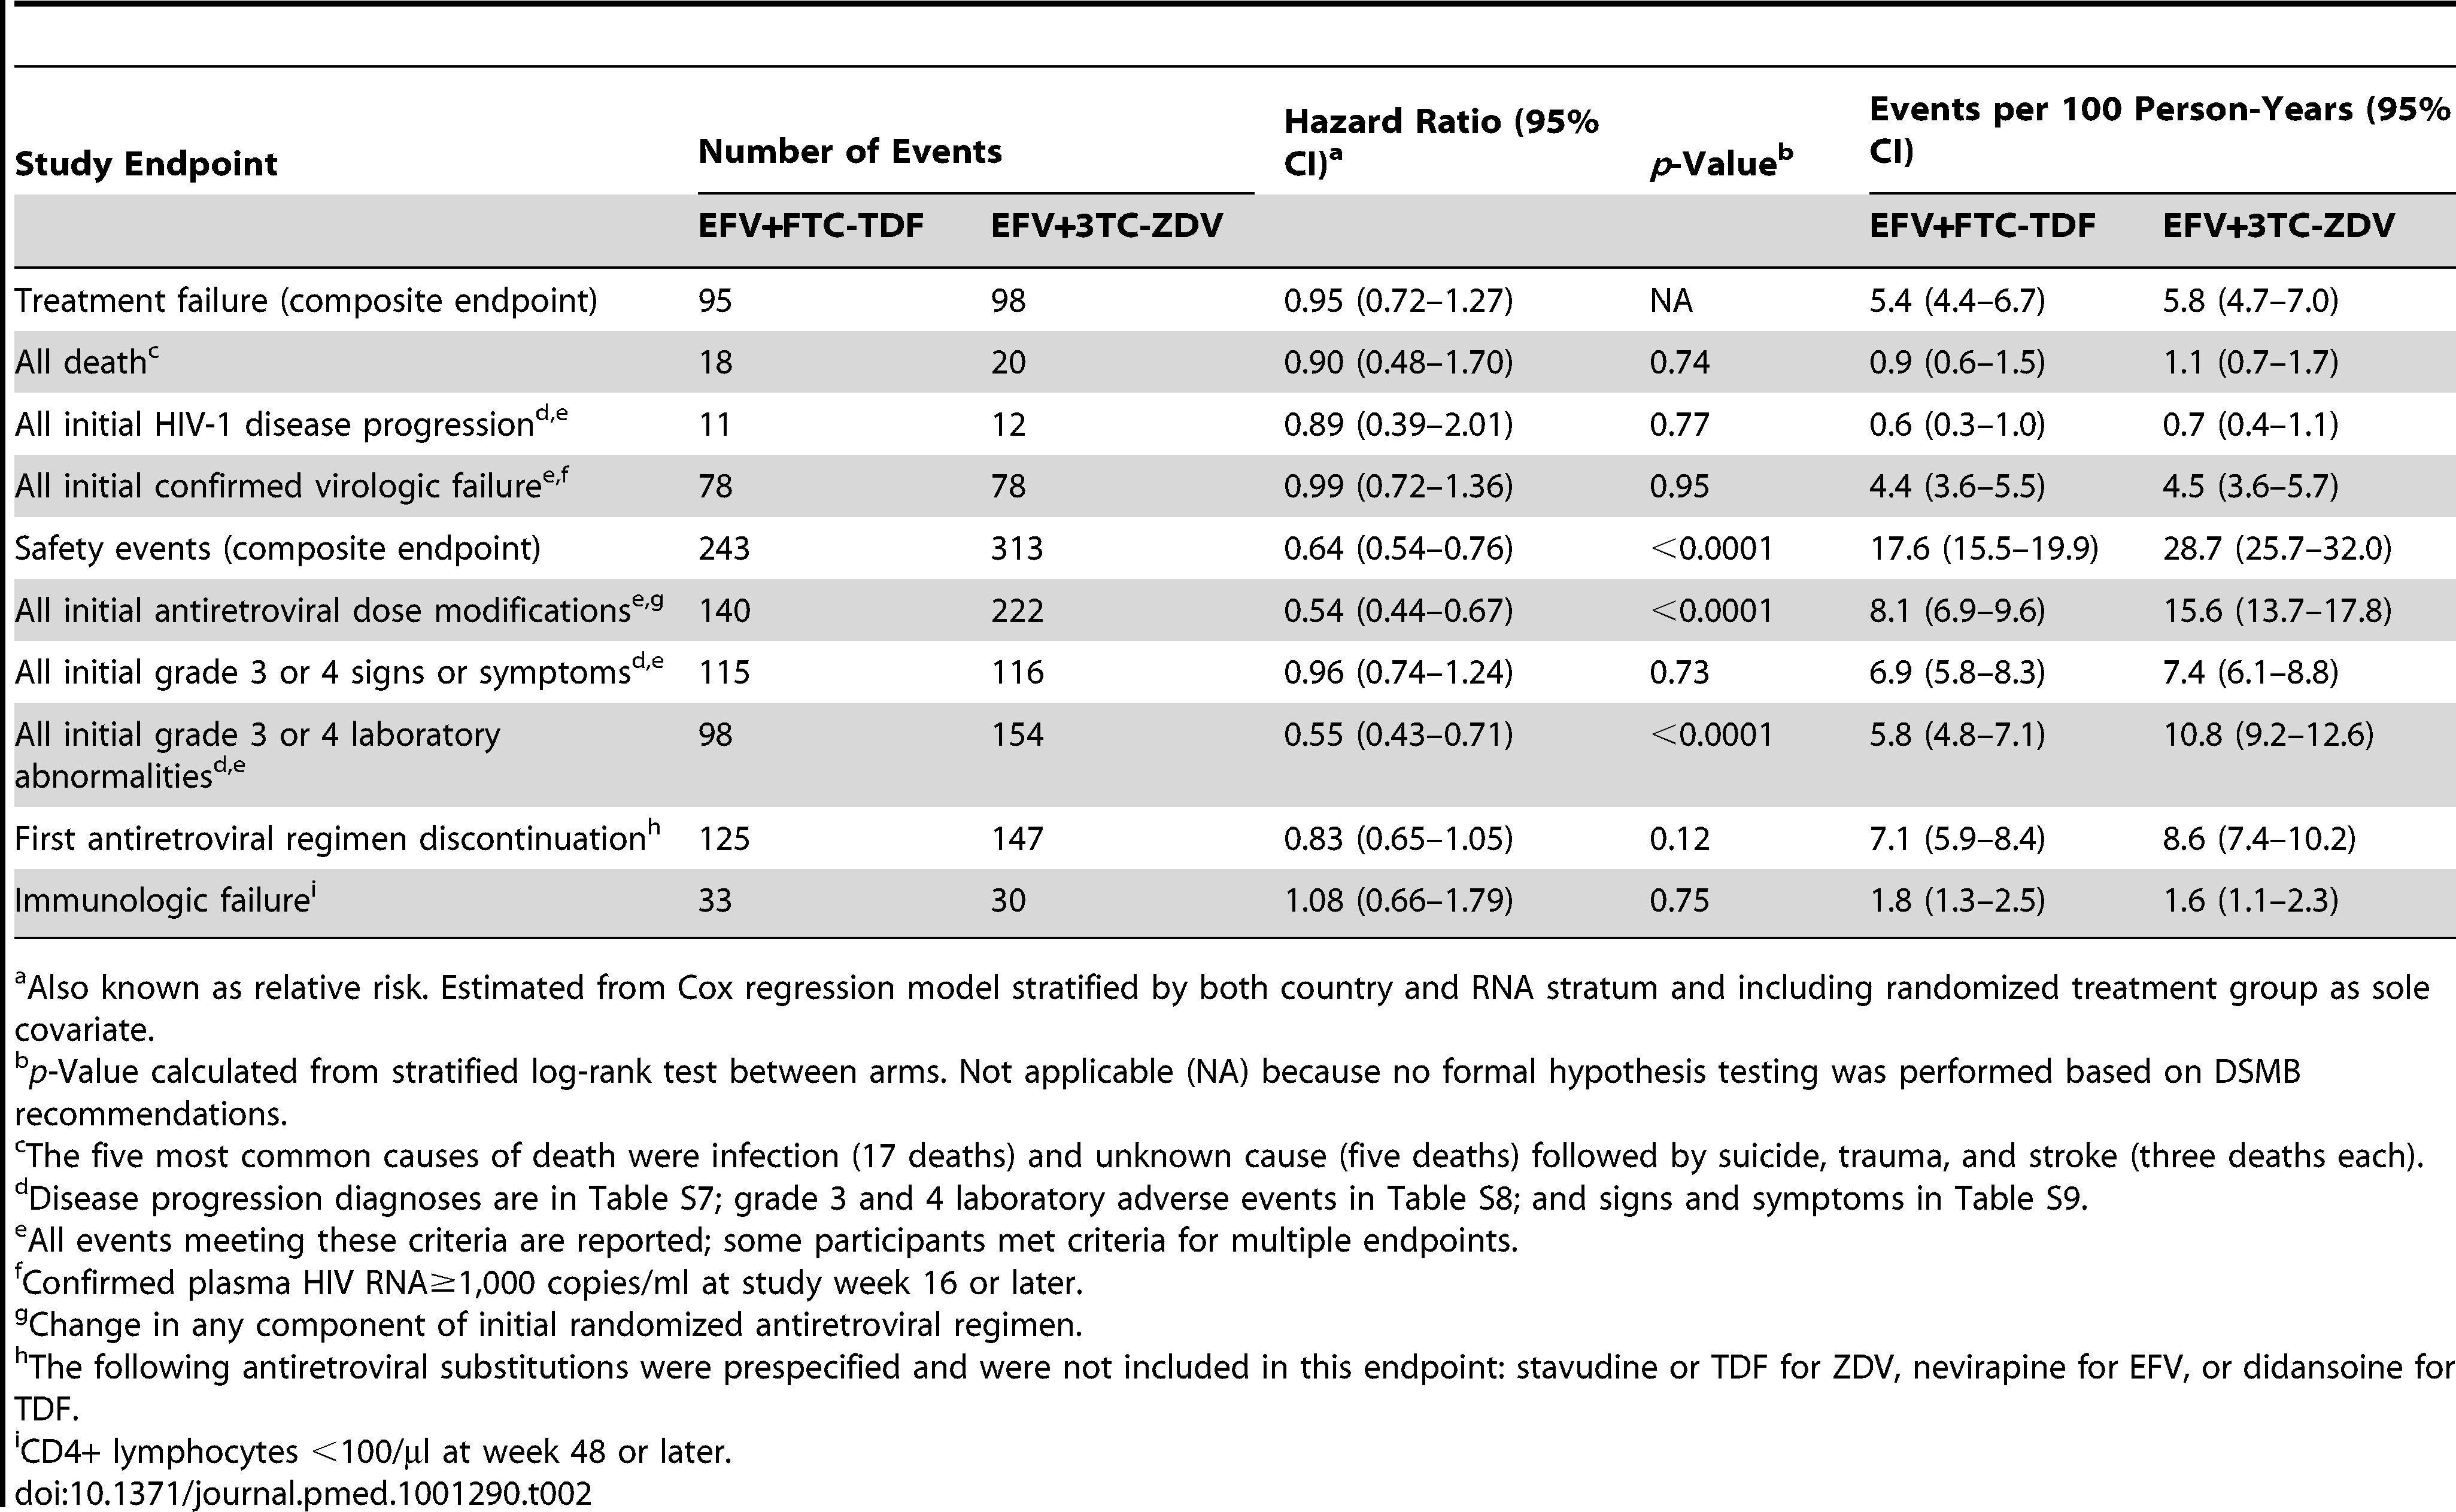 Primary and secondary time-to-event outcomes for comparison of efavirenz plus emtricitabine-tenofovir-DF to efavirenz plus lamivudine-zidovudine using data collected through 31-May-2010.